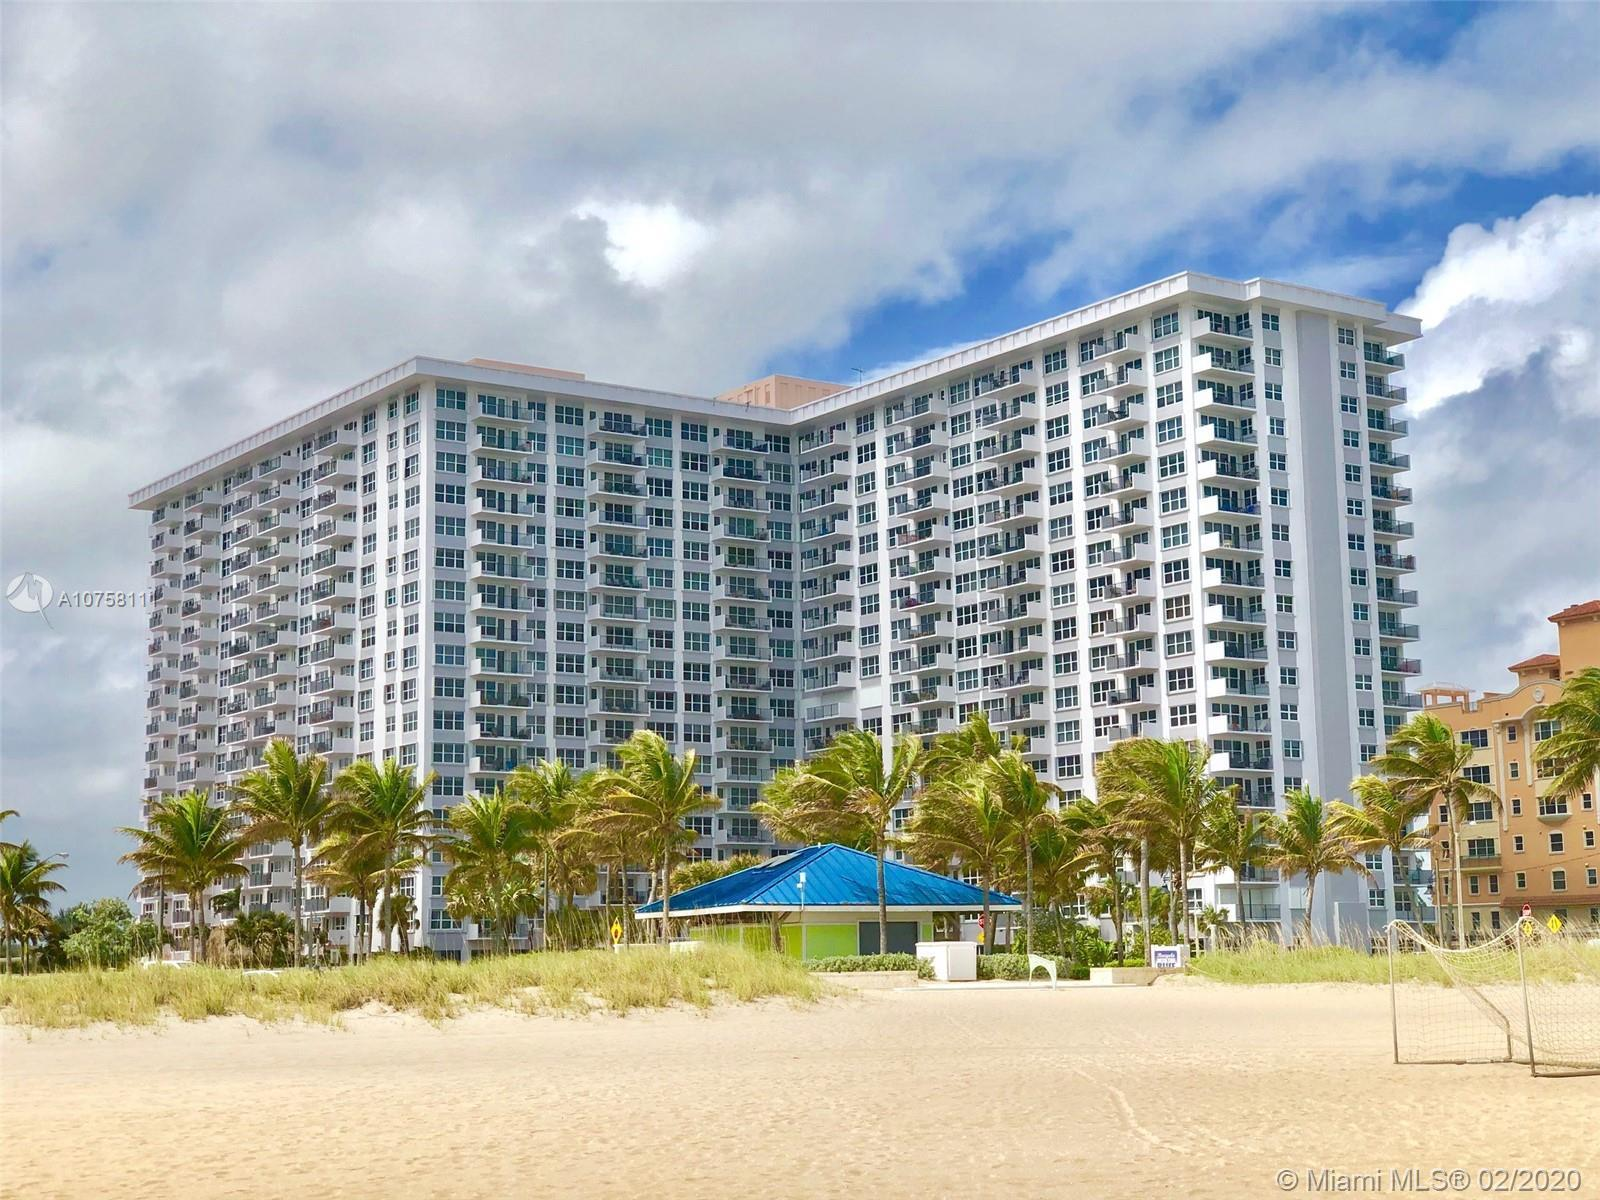 BEST BUY ON THE BEACH. SPACIOUS 1390 TOTAL SQ FT OFFERING EXPANSIVE OCEAN VIEW. COME SEE THIS SUPER